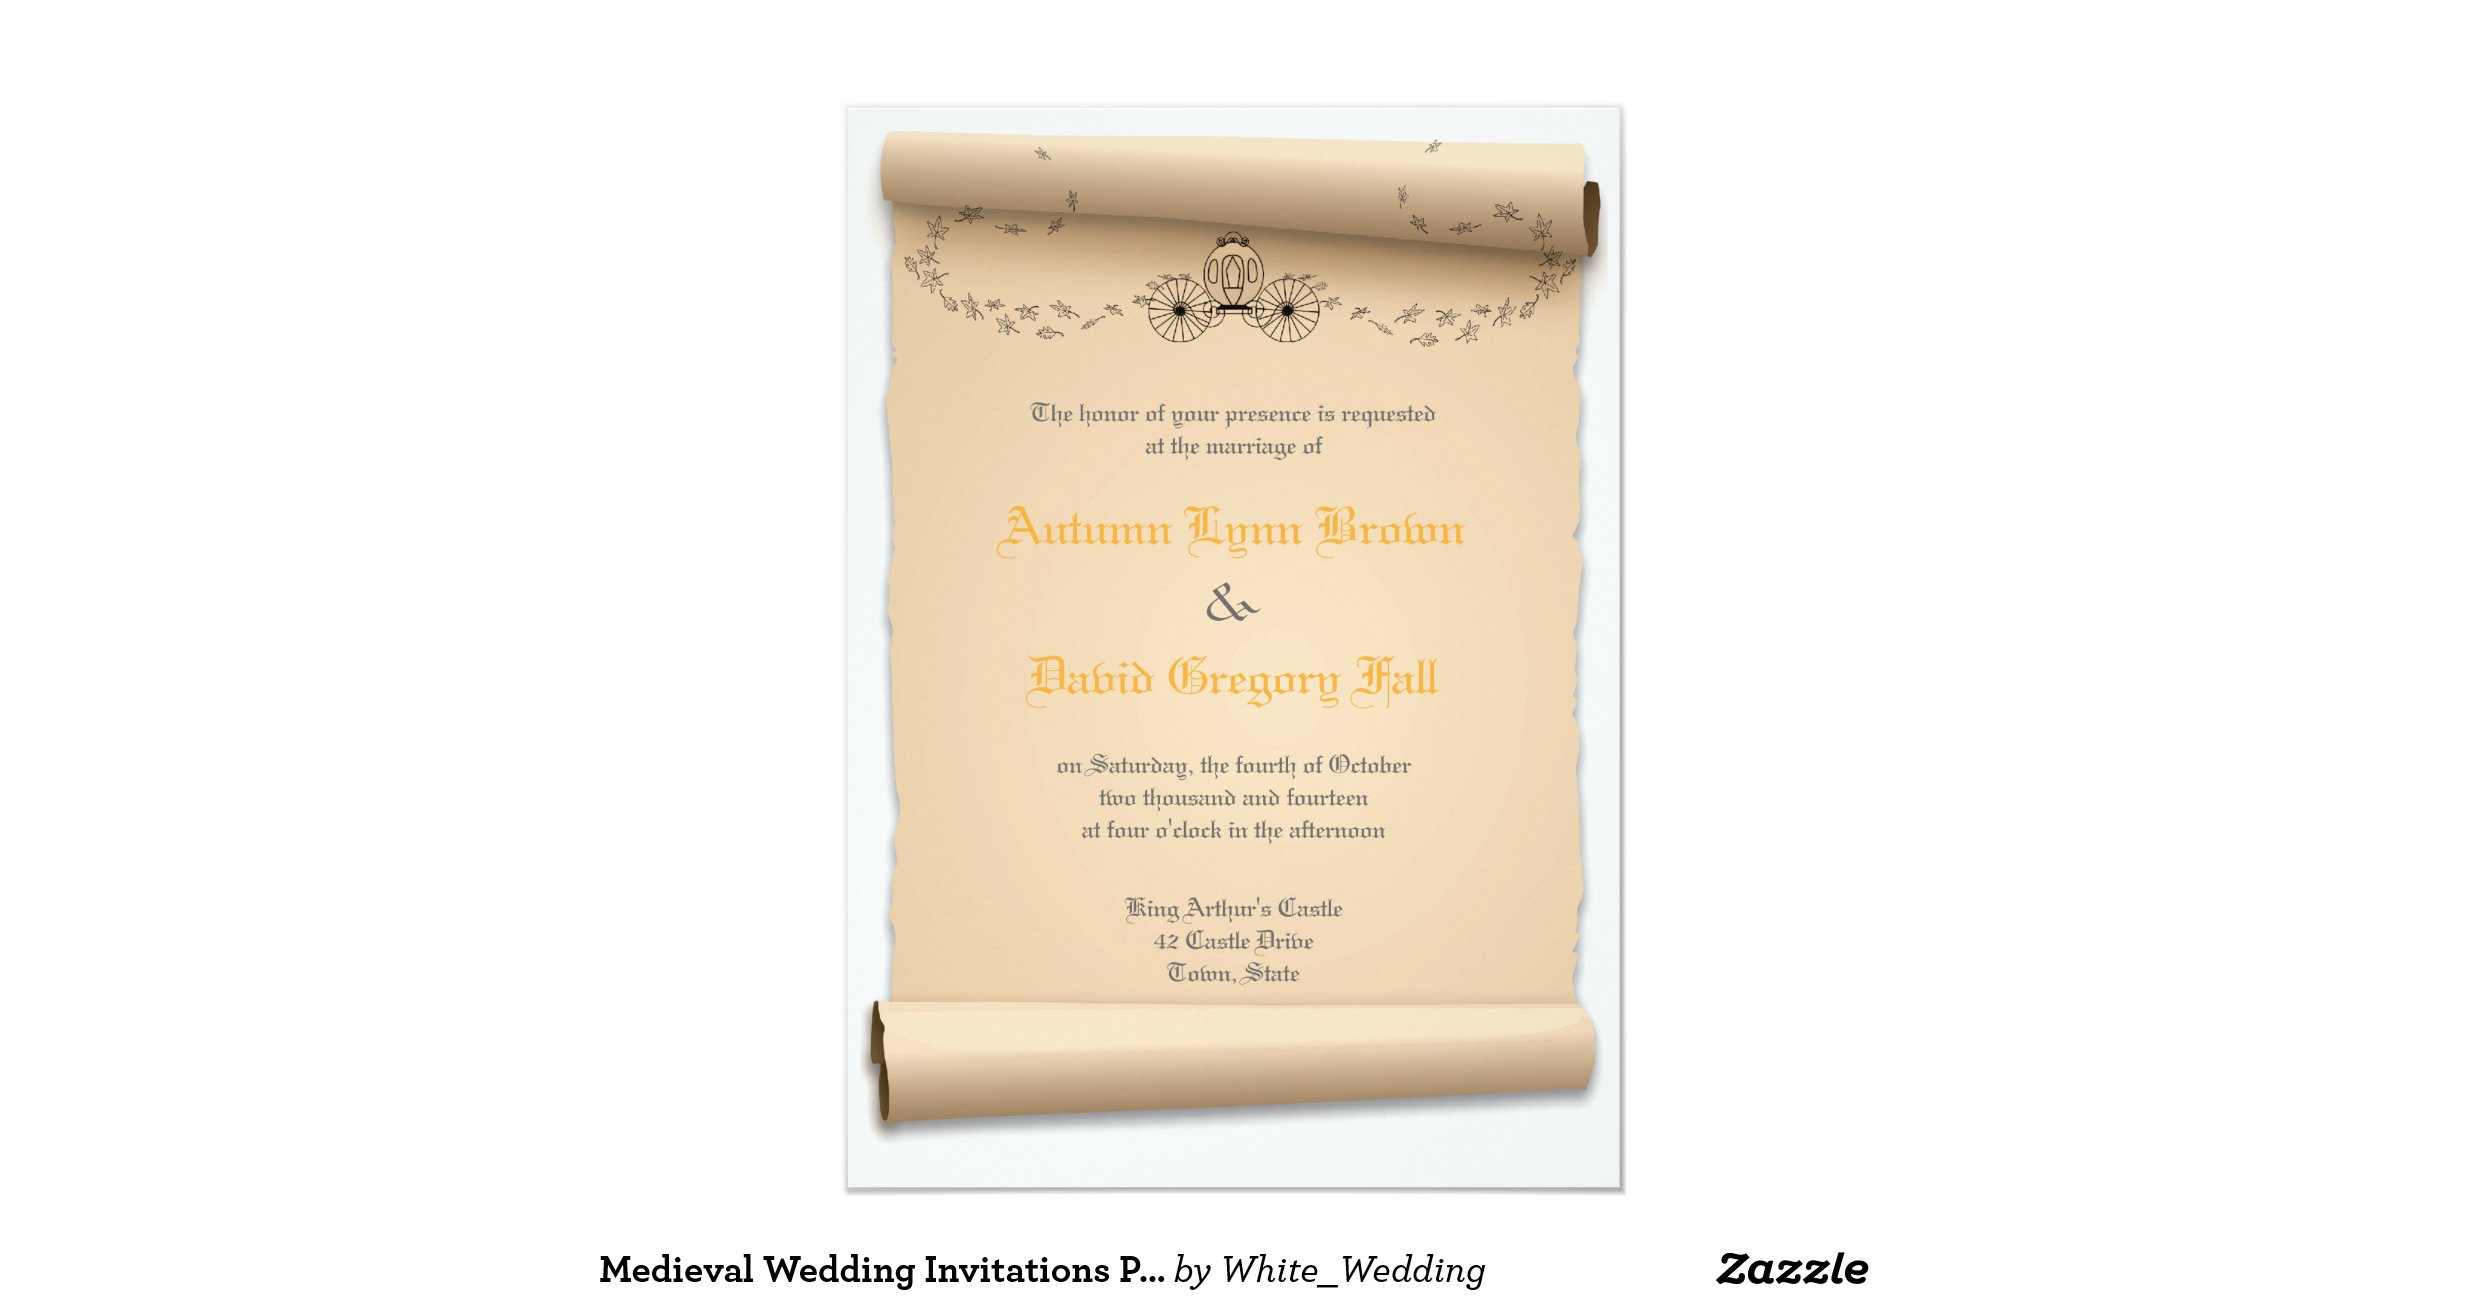 Medieval Wedding Invitation Wording: Medieval_wedding_invitations_pumpkin_carriage